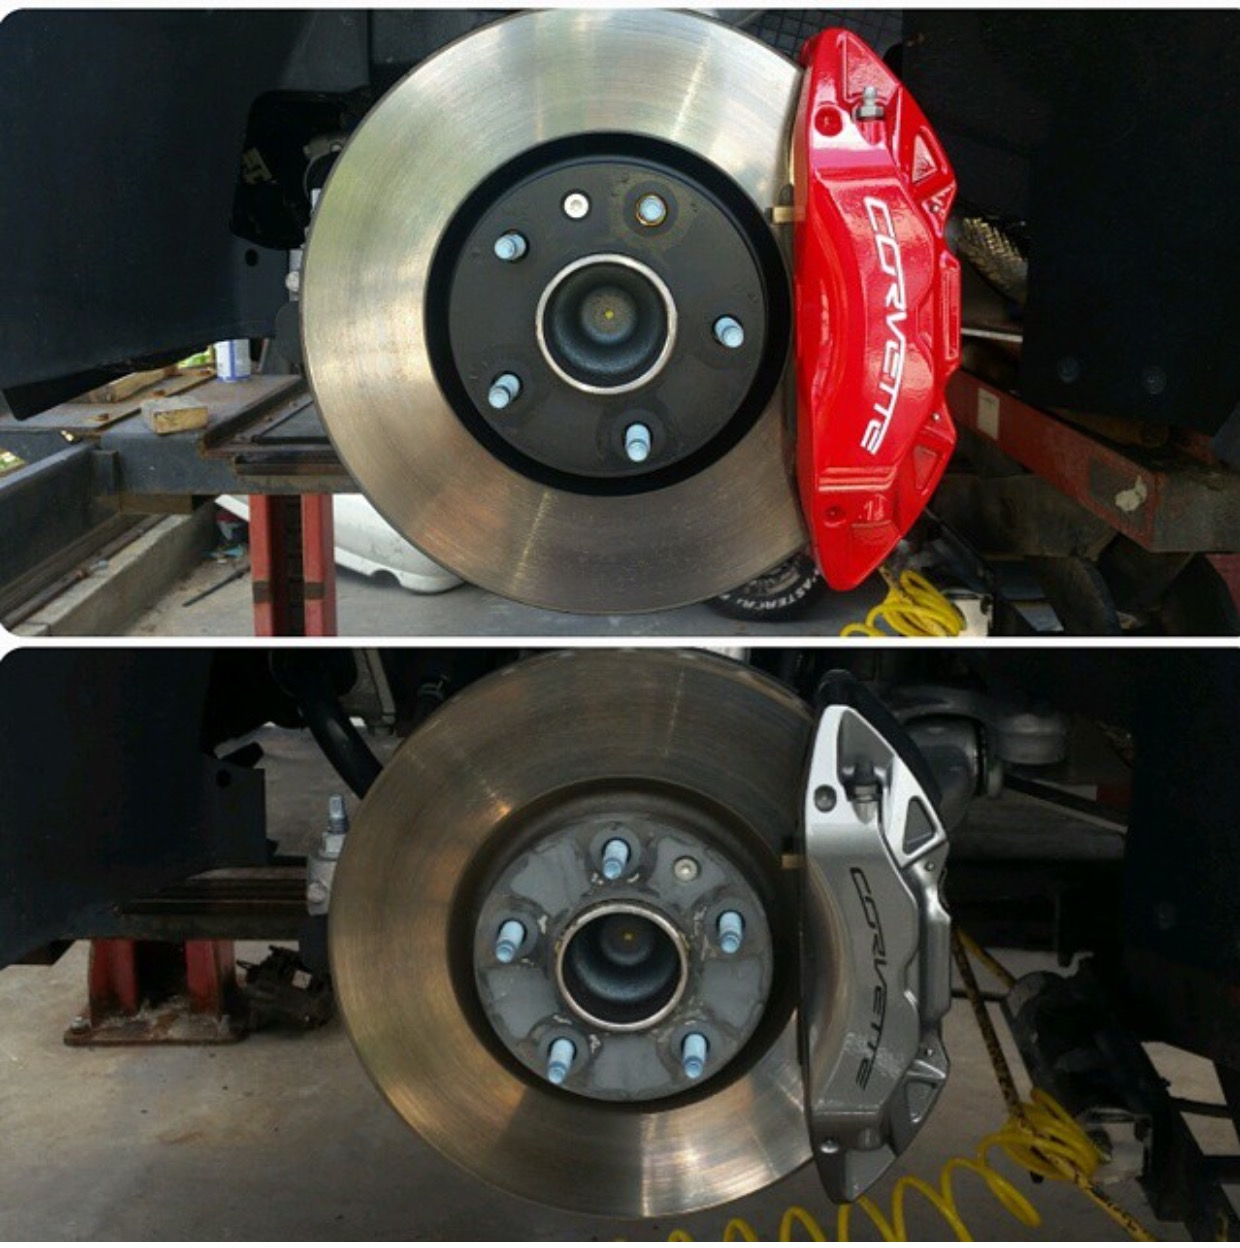 Painted calipers